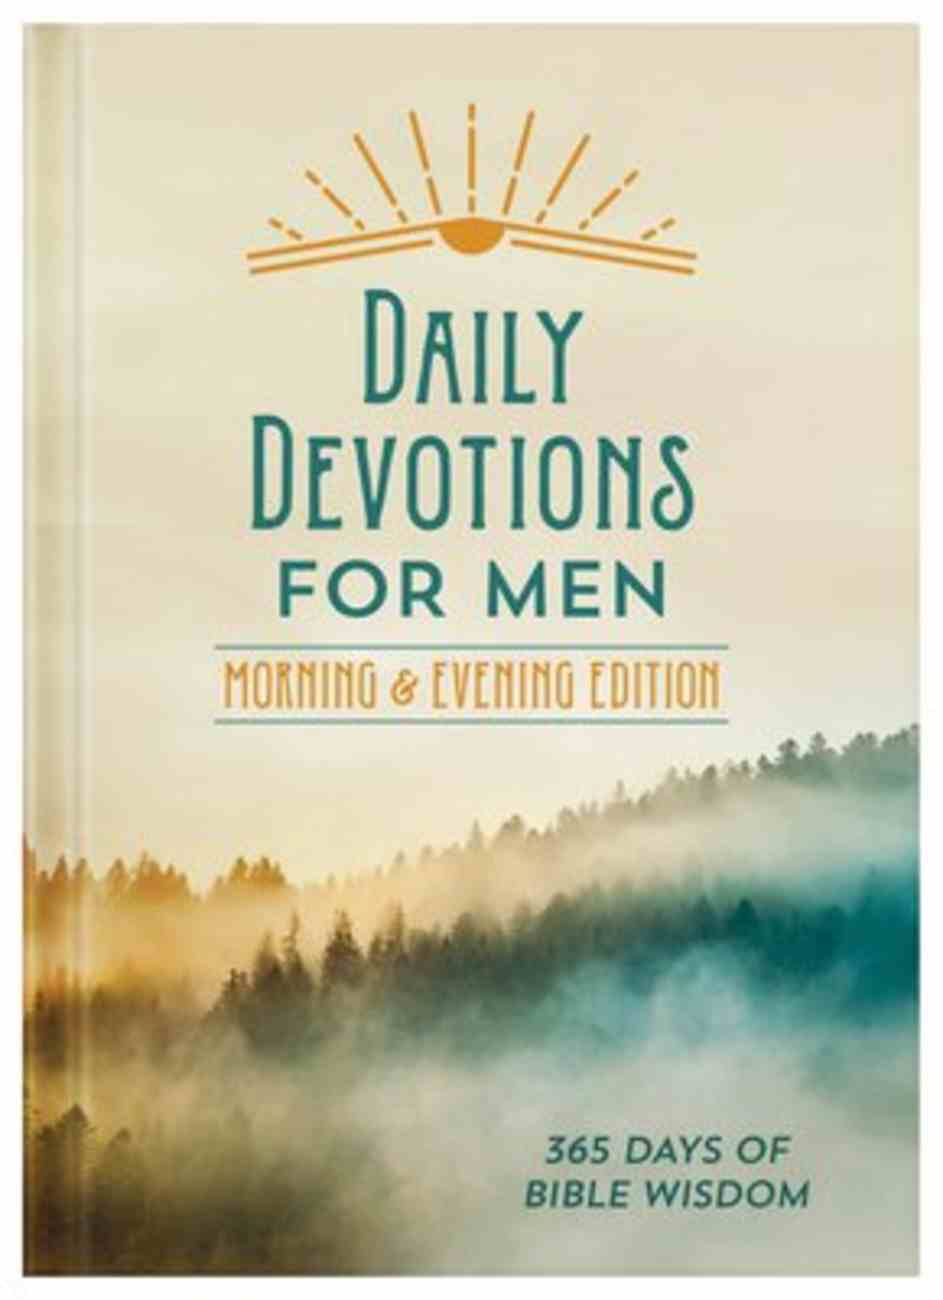 Daily Devotions For Men Morning & Evening Edition: 365 Days of Bible Wisdom Hardback